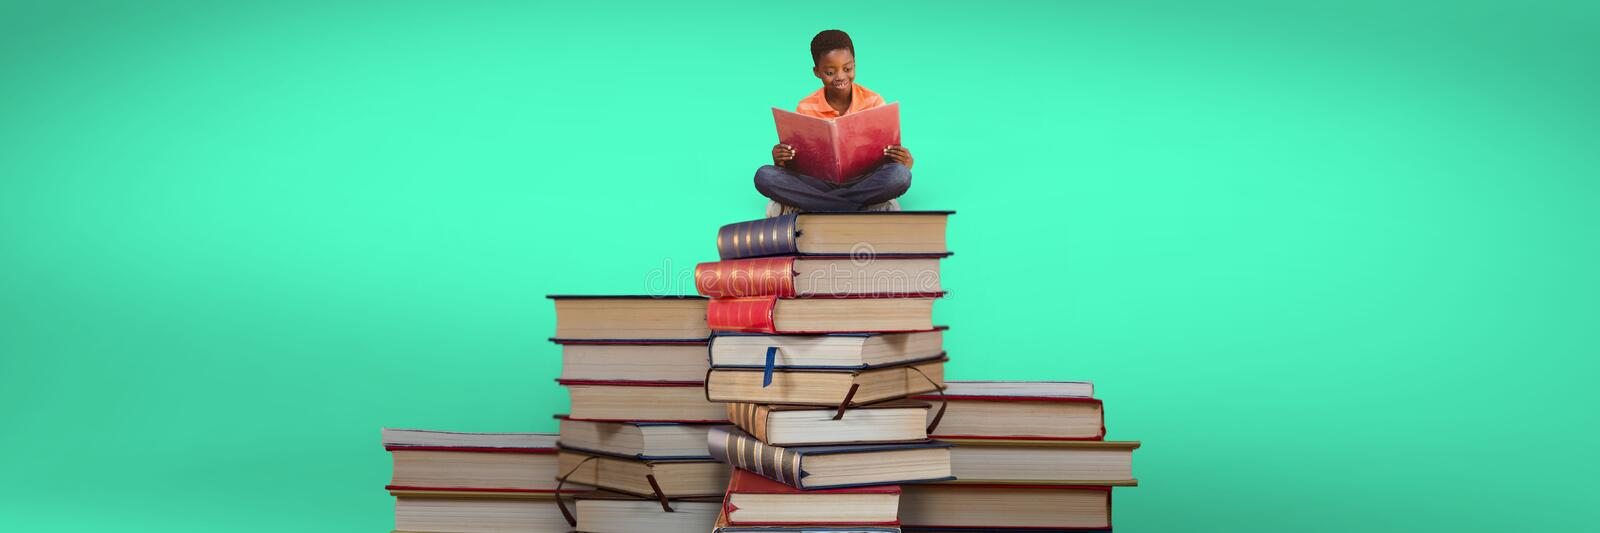 Boy reading and sitting on a pile of books and green background stock photography